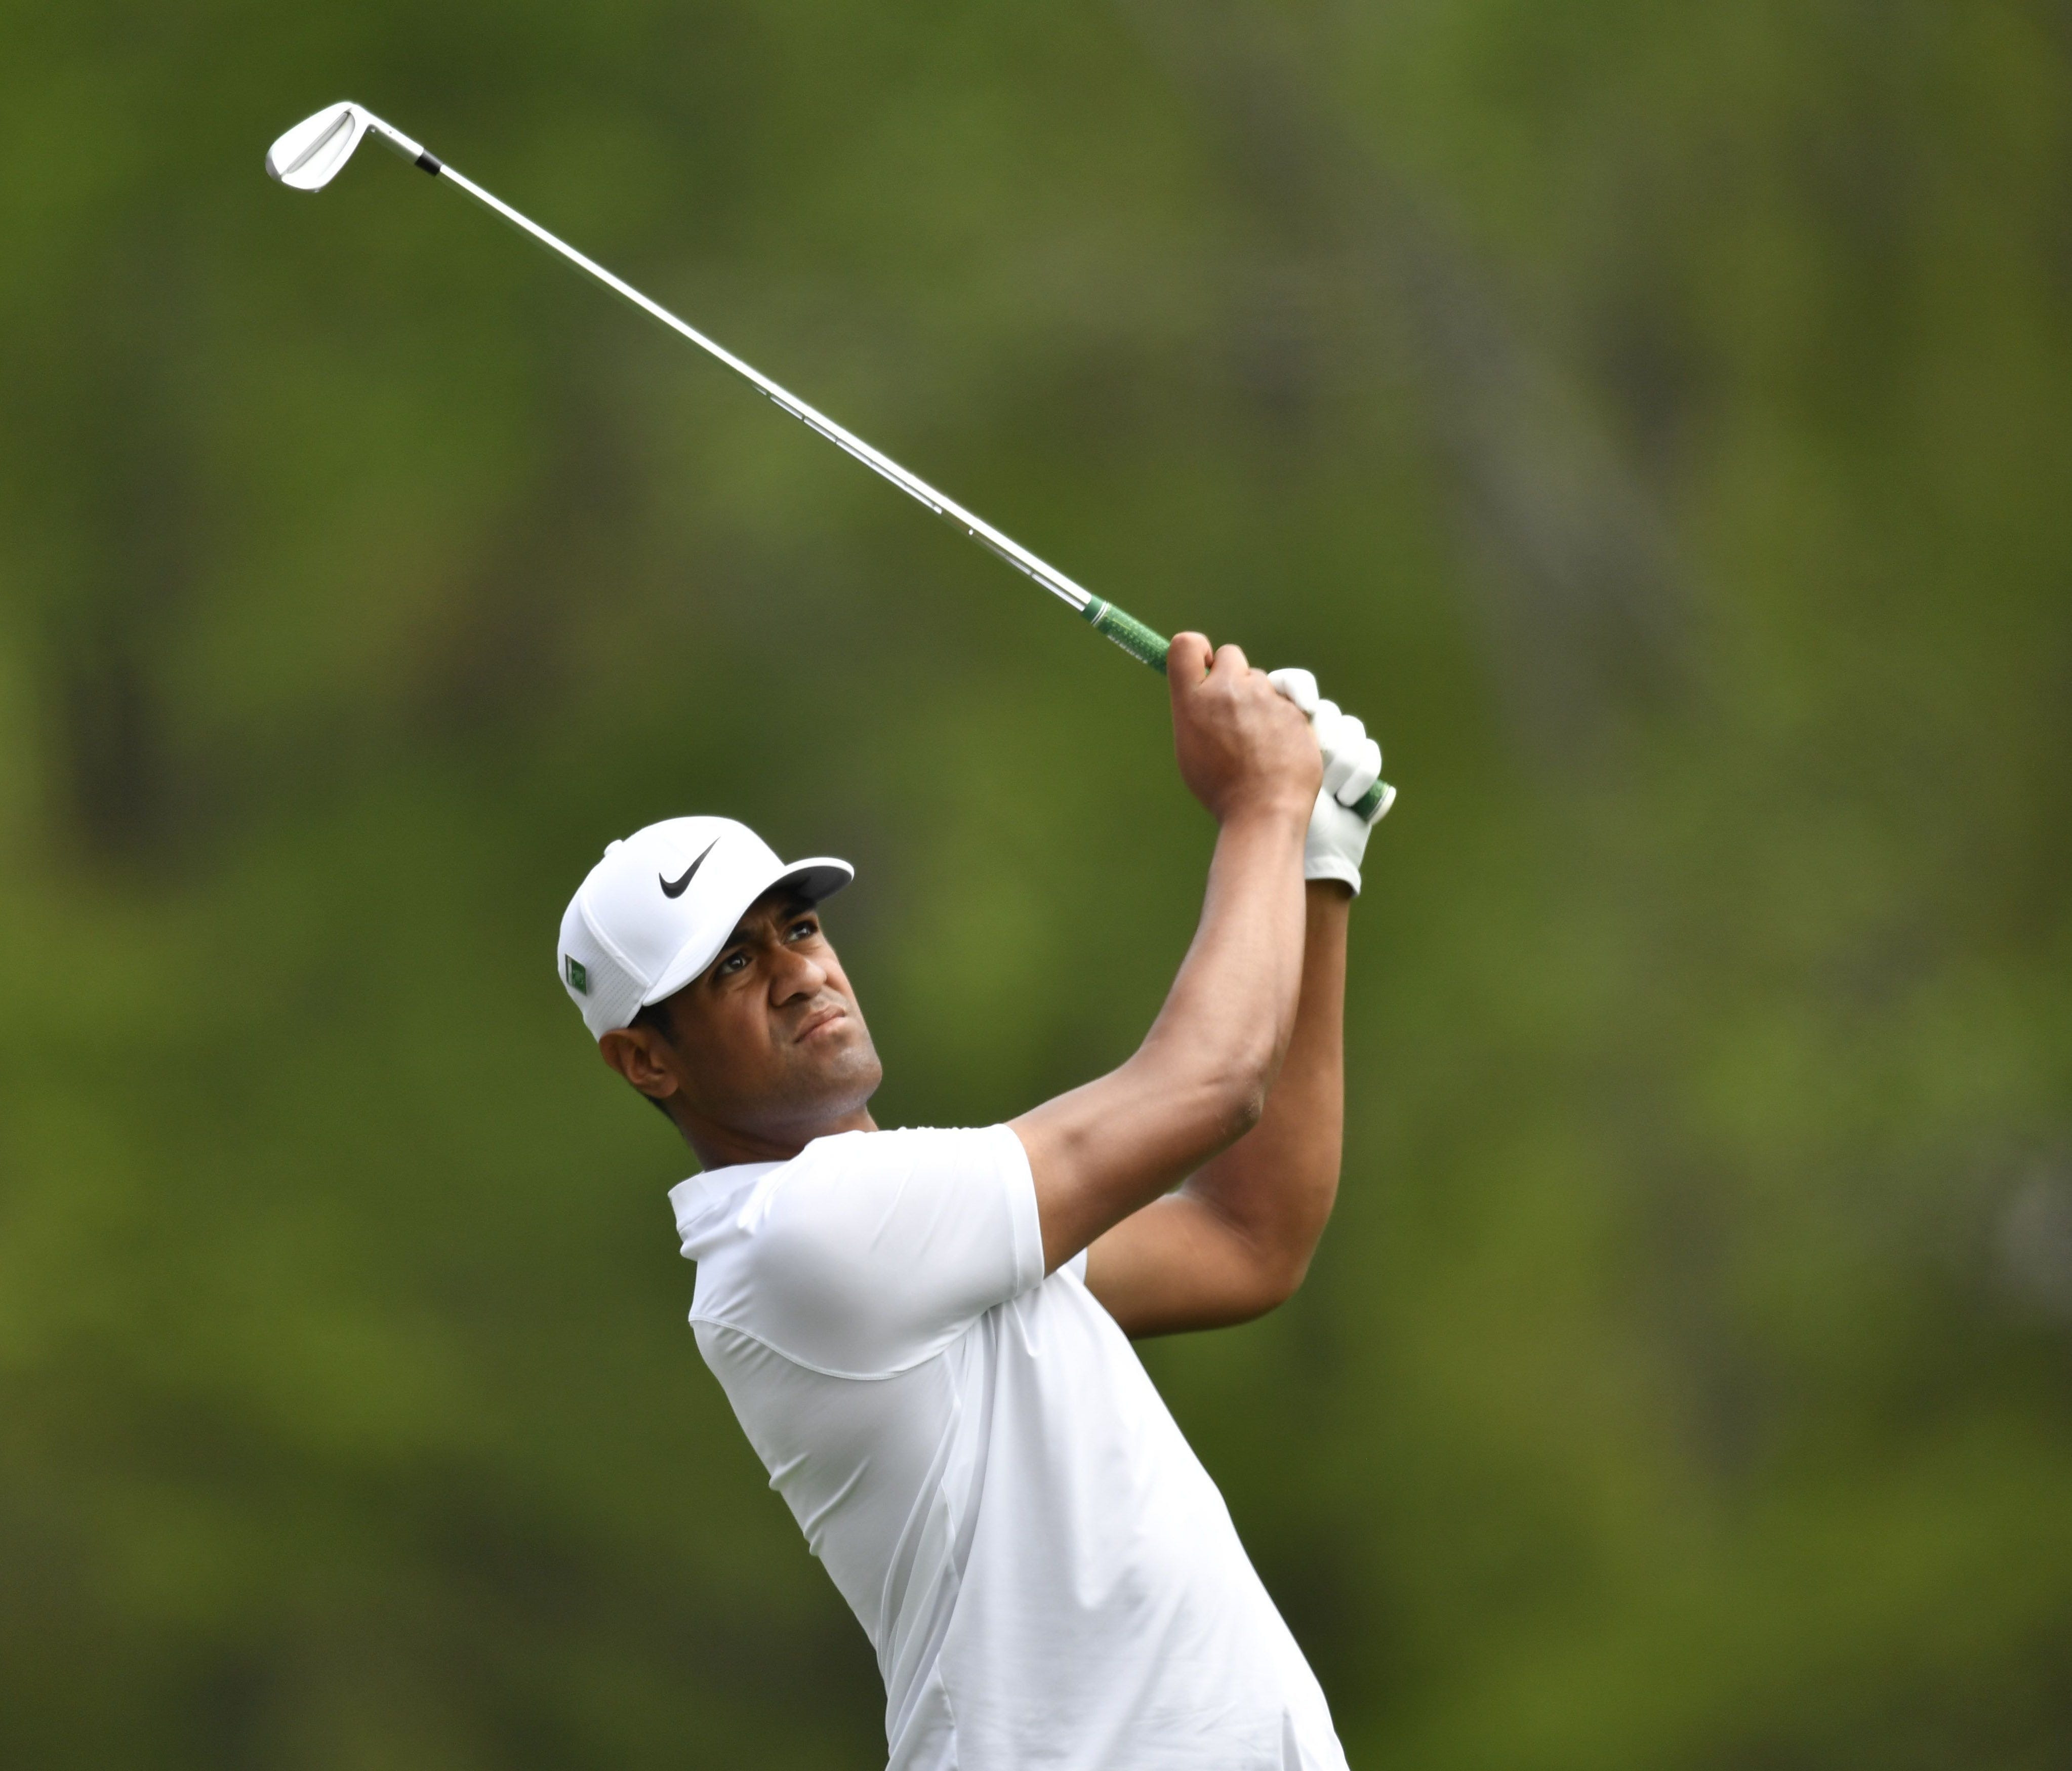 Tony Finau hits his tee shot on the 12th hole during the second round of the Masters at Augusta National Golf Club on April 6.